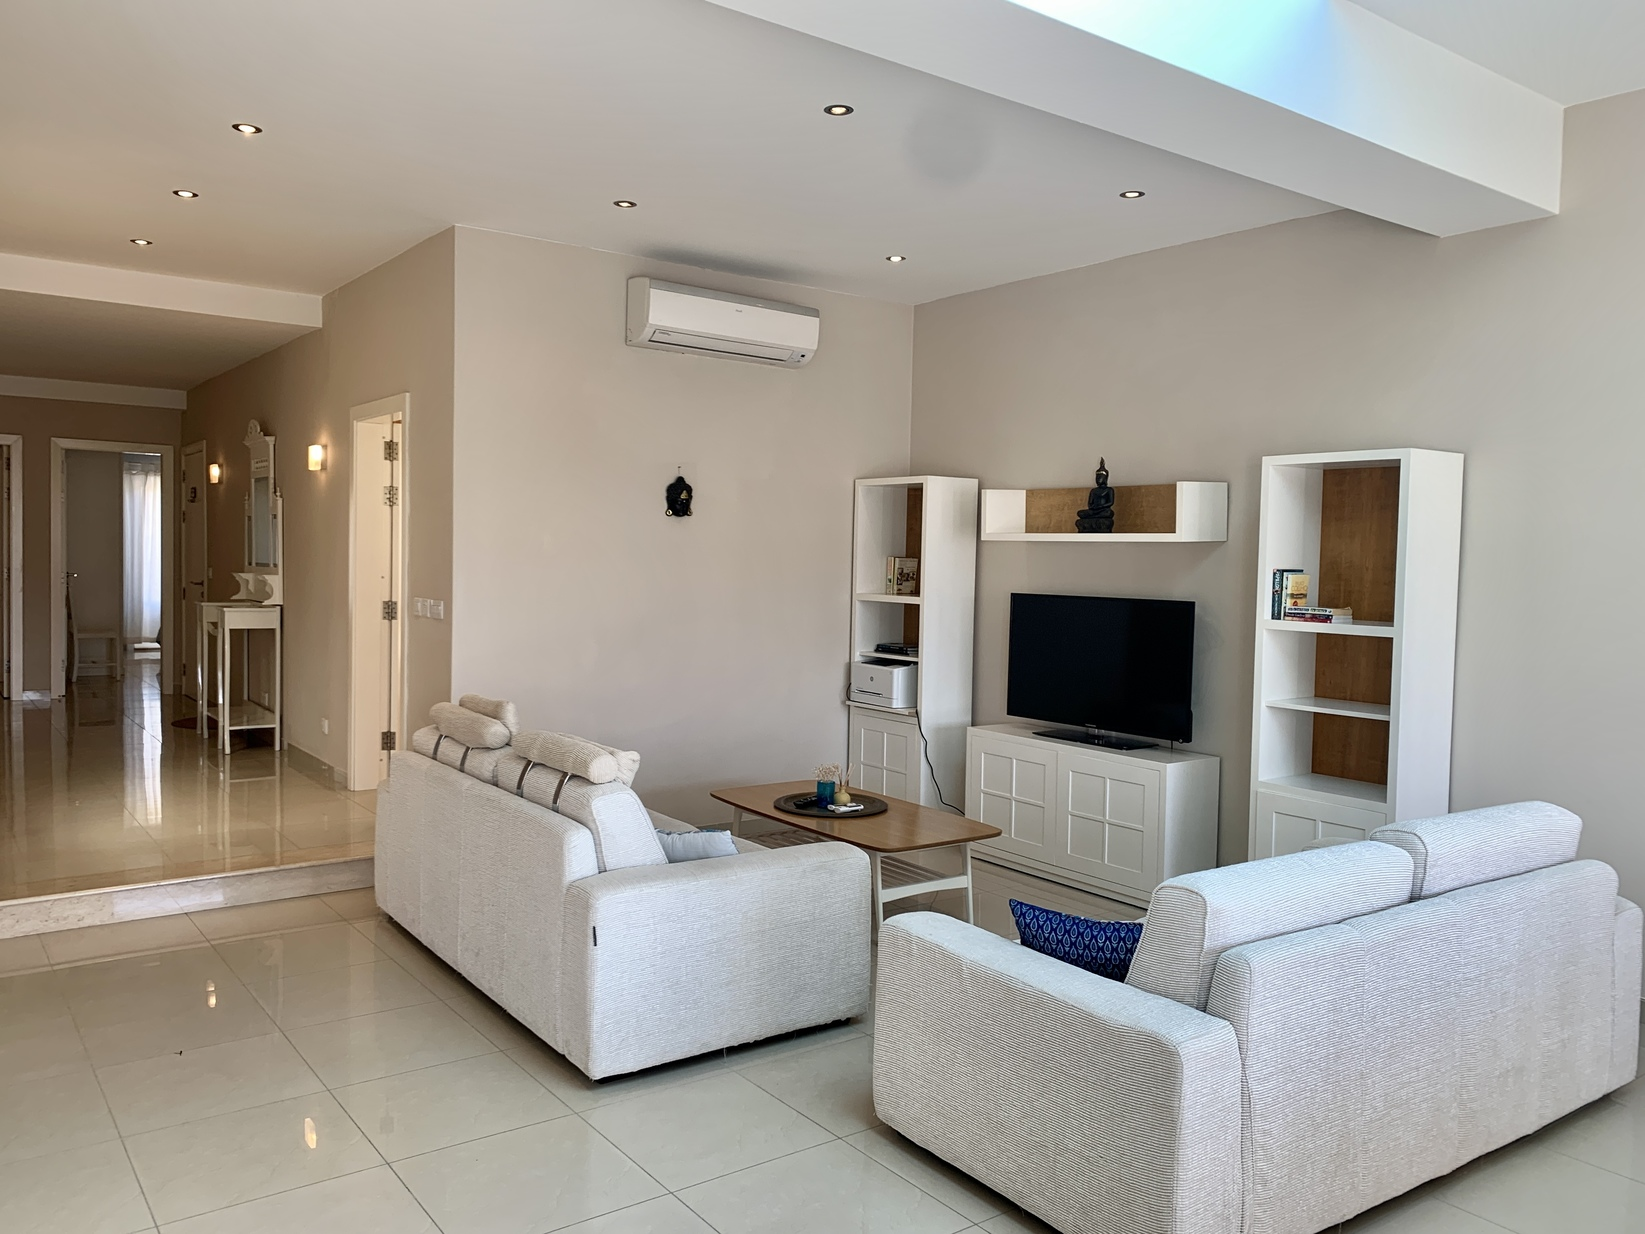 3 bed Apartment For Rent in St Julian's, St Julian's - thumb 4